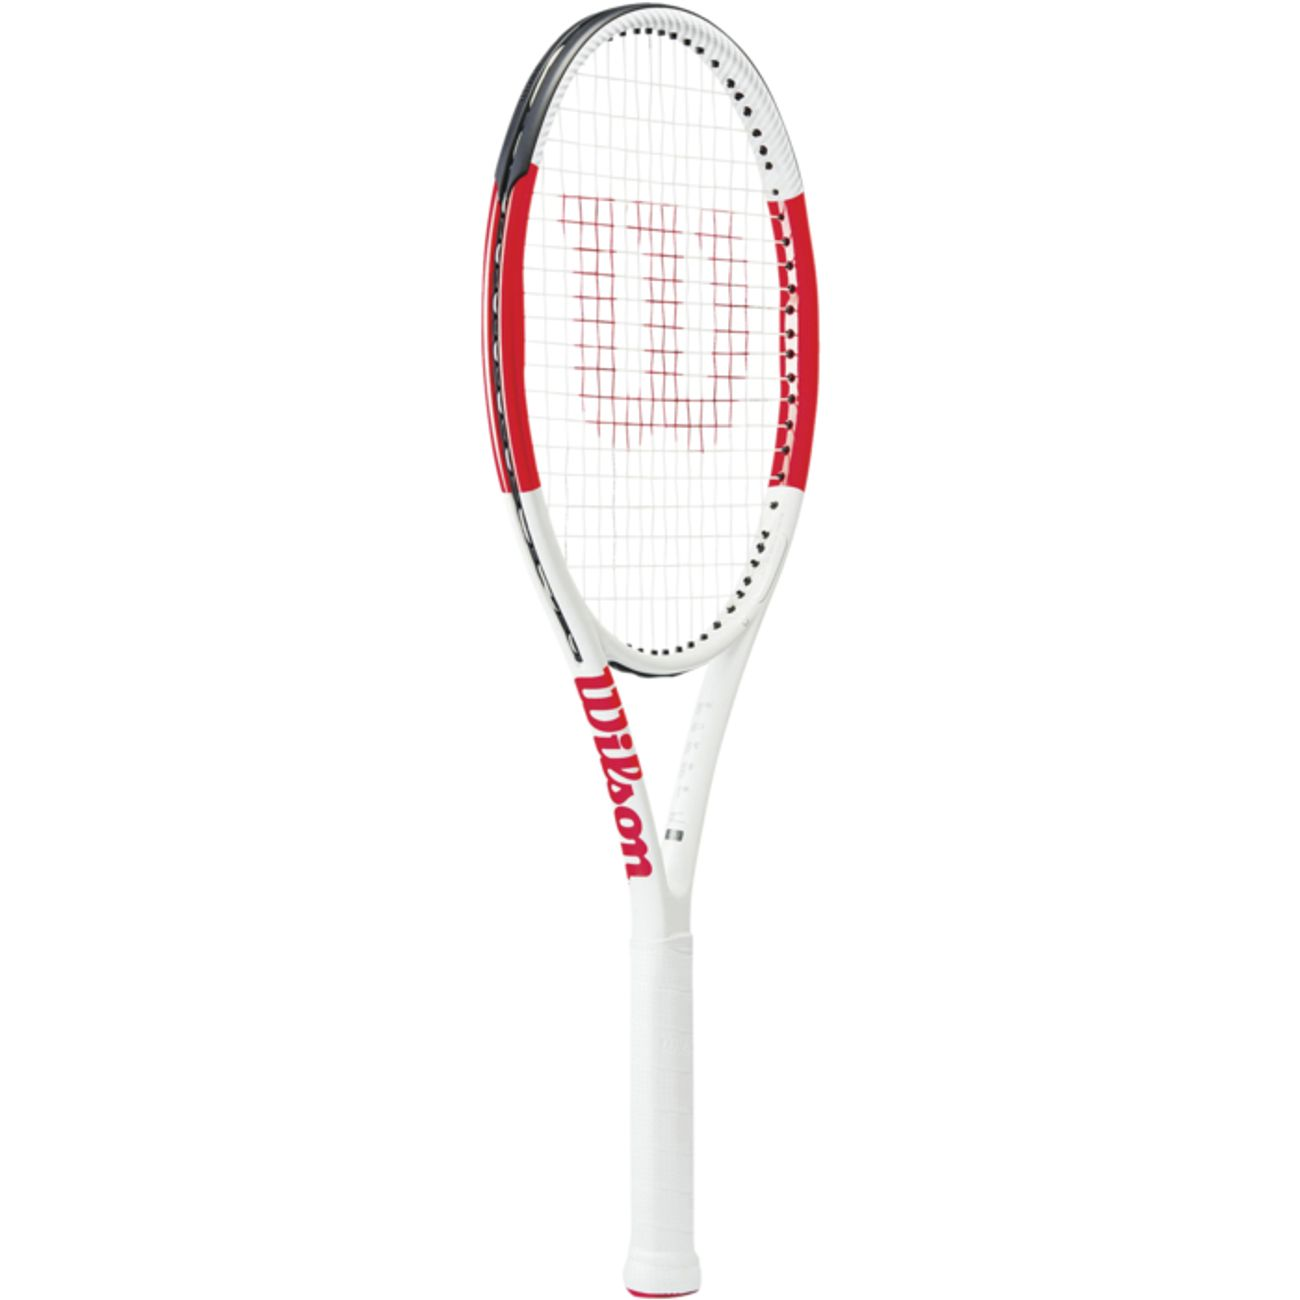 ONE LITE 102 RAQUETTE TENNIS WILSON SIX.